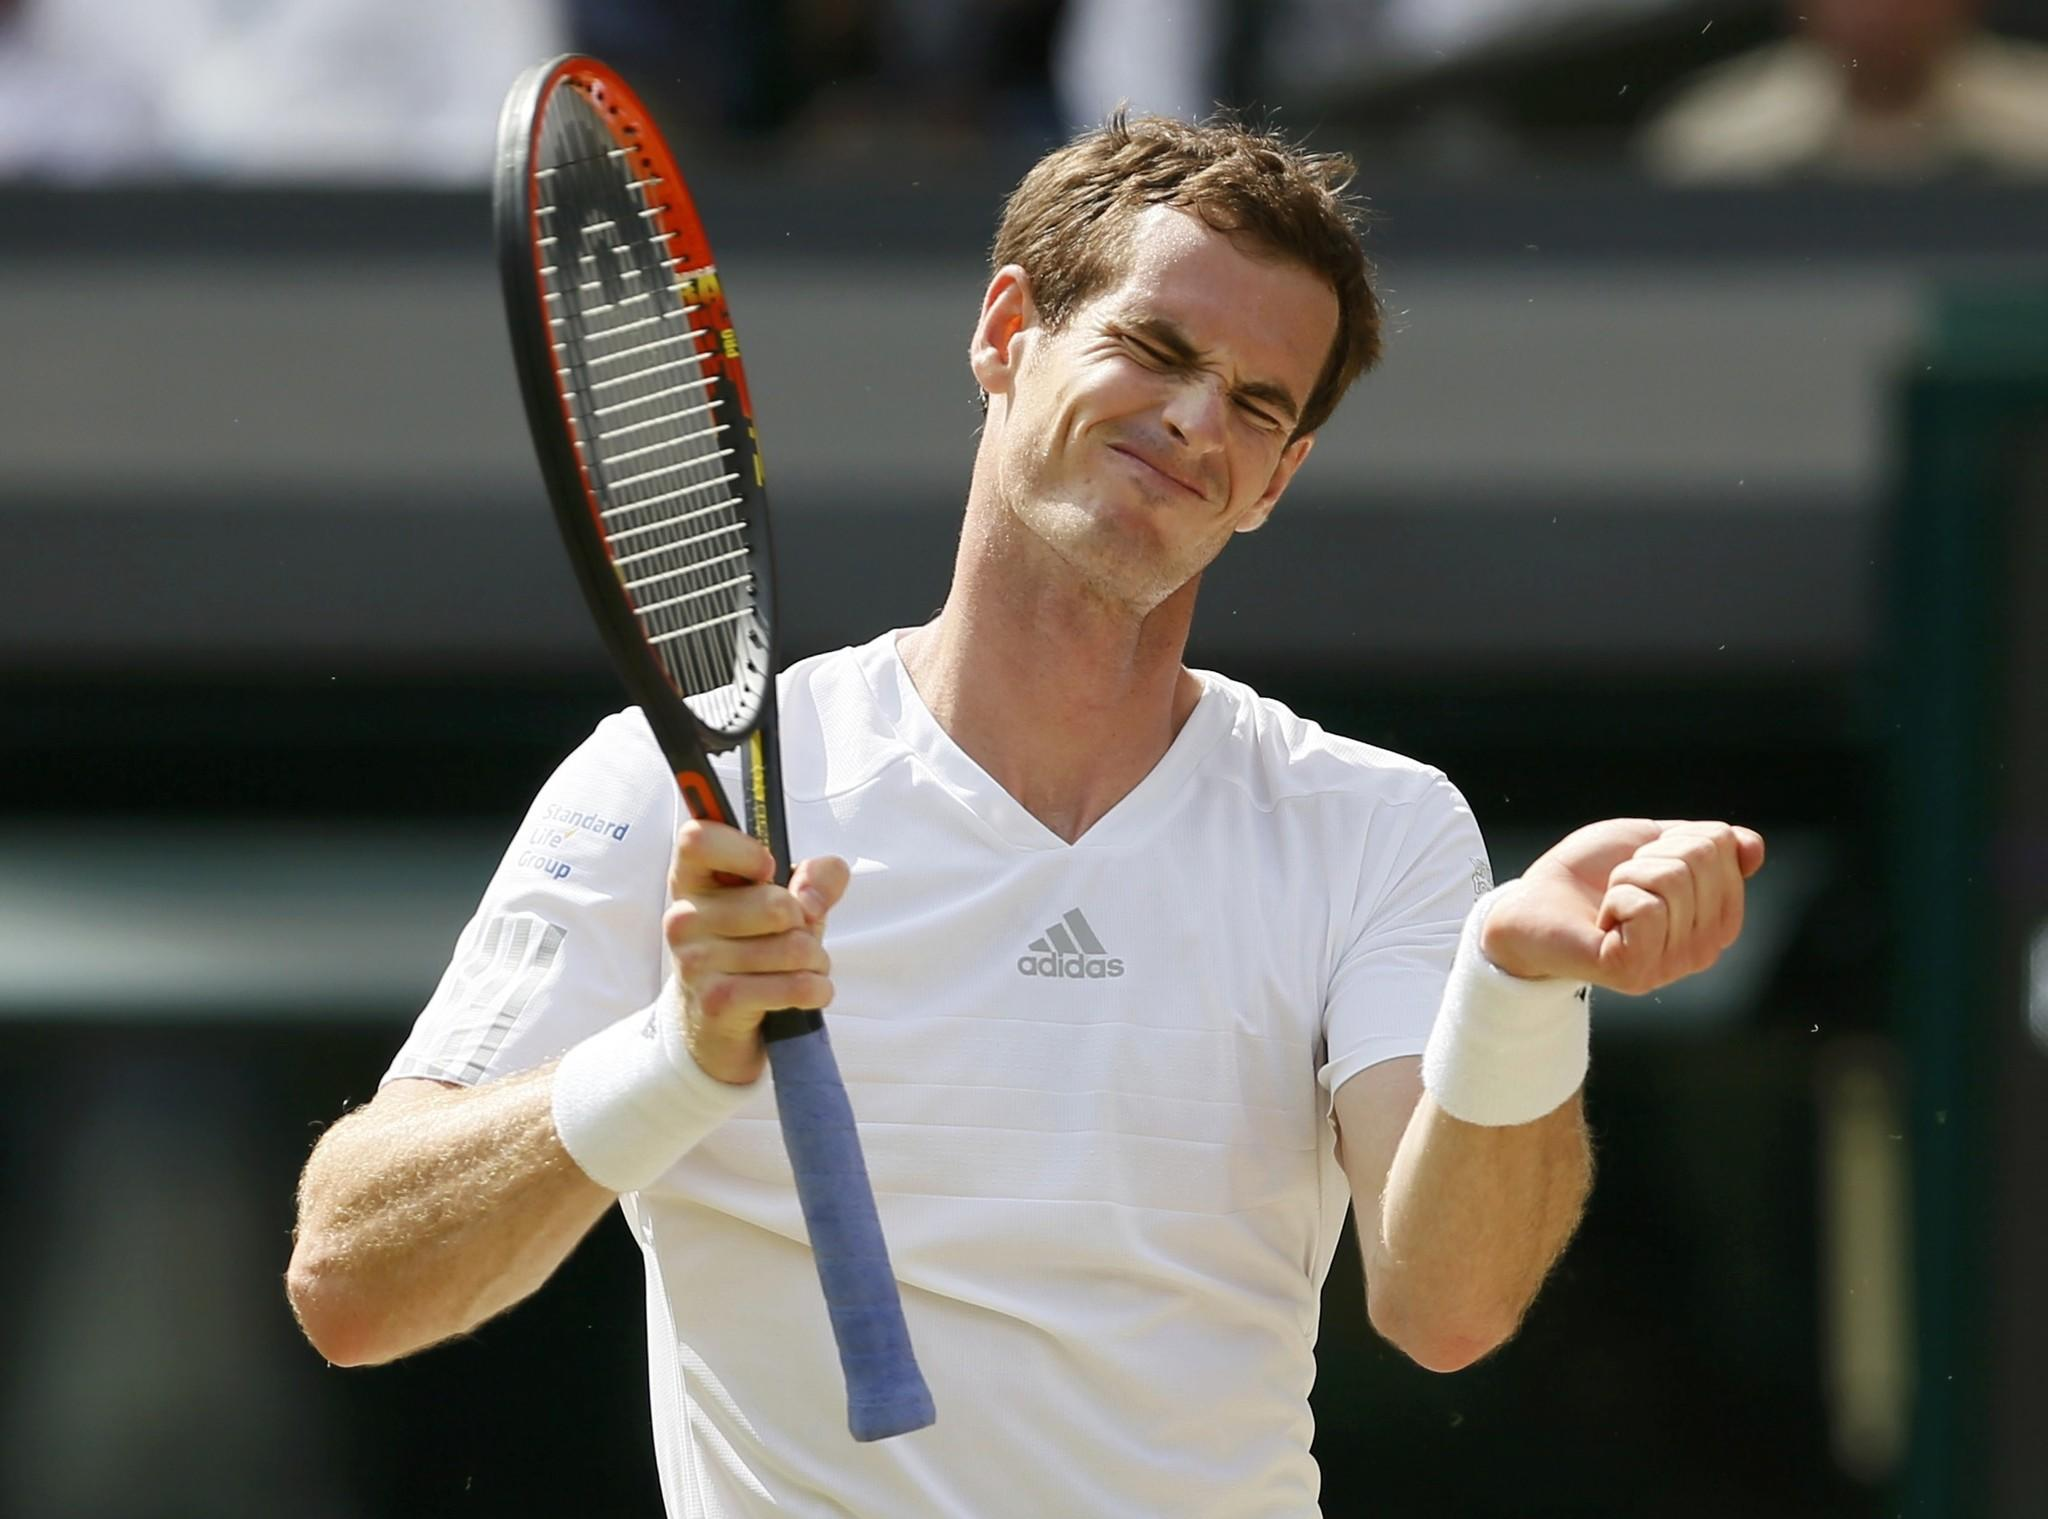 Andy Murray of Britain reacts during his men's singles quarterfinal tennis match against Grigor Dimitrov of Bulgaria.